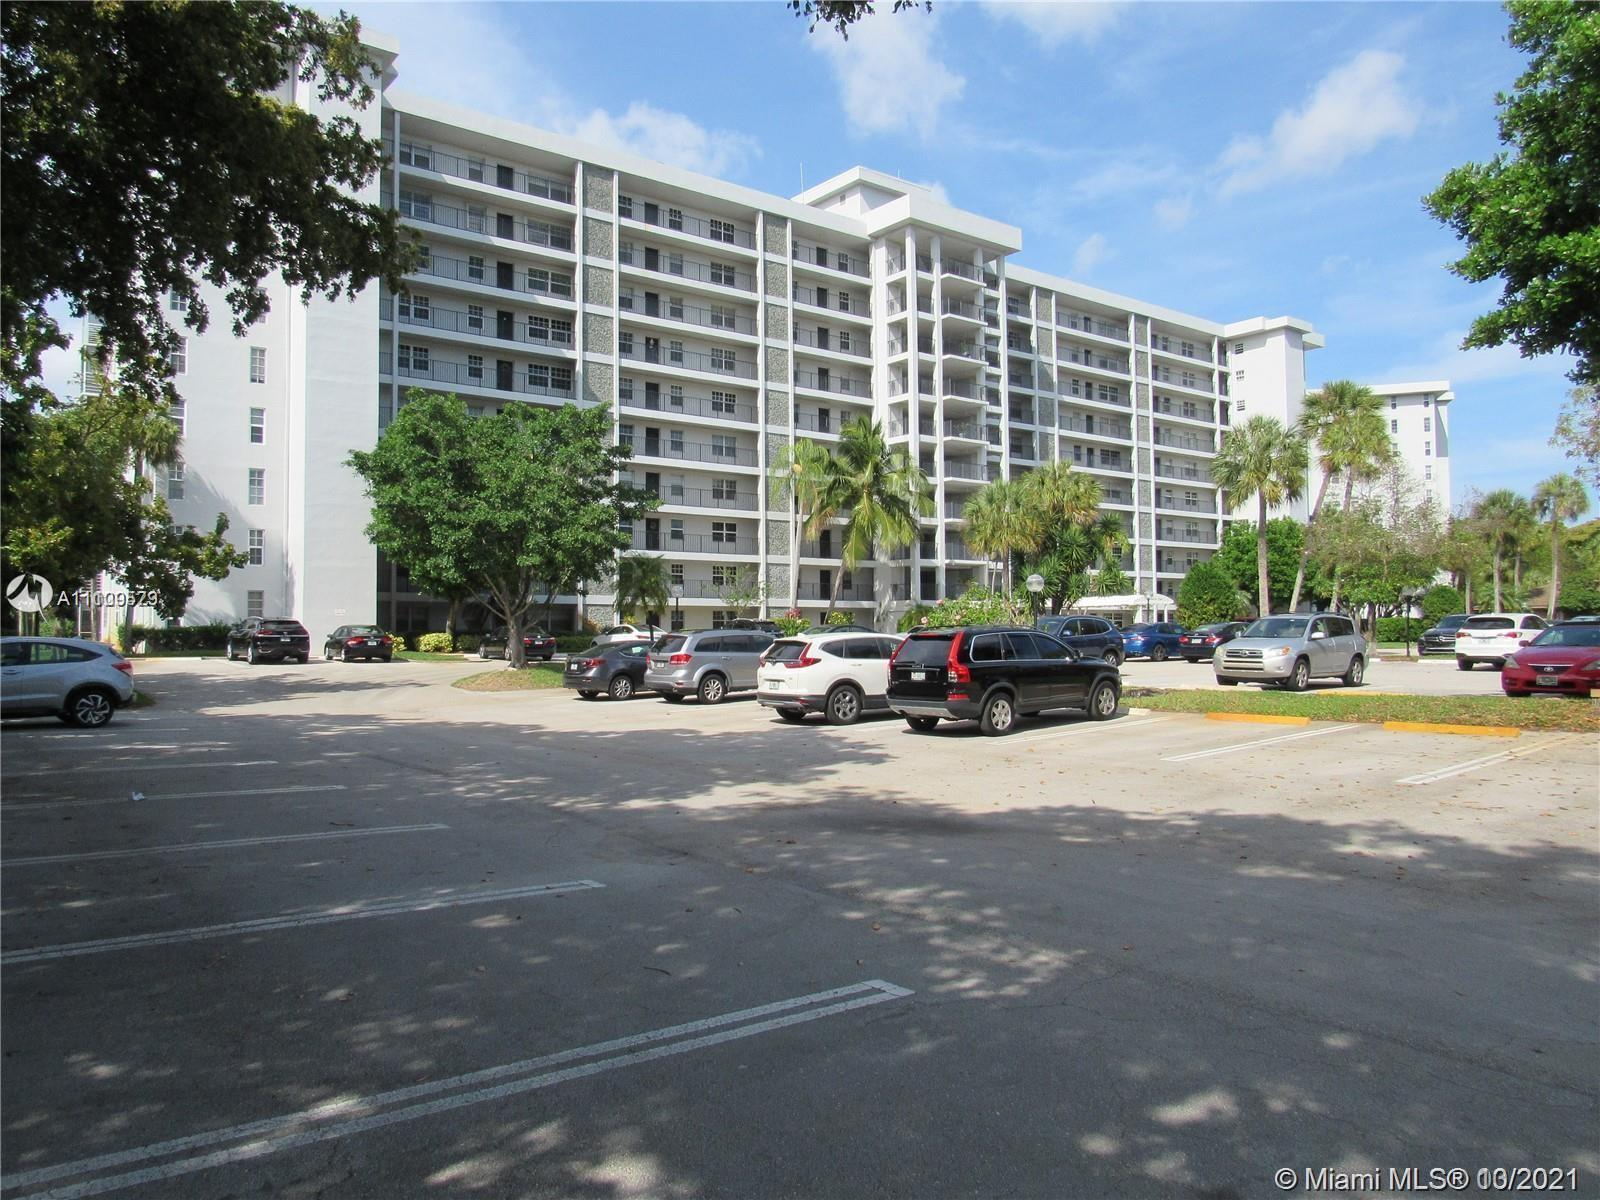 Beautiful 2 bedroom 2 bath apartment in a great location with spectacular view on a golf course and